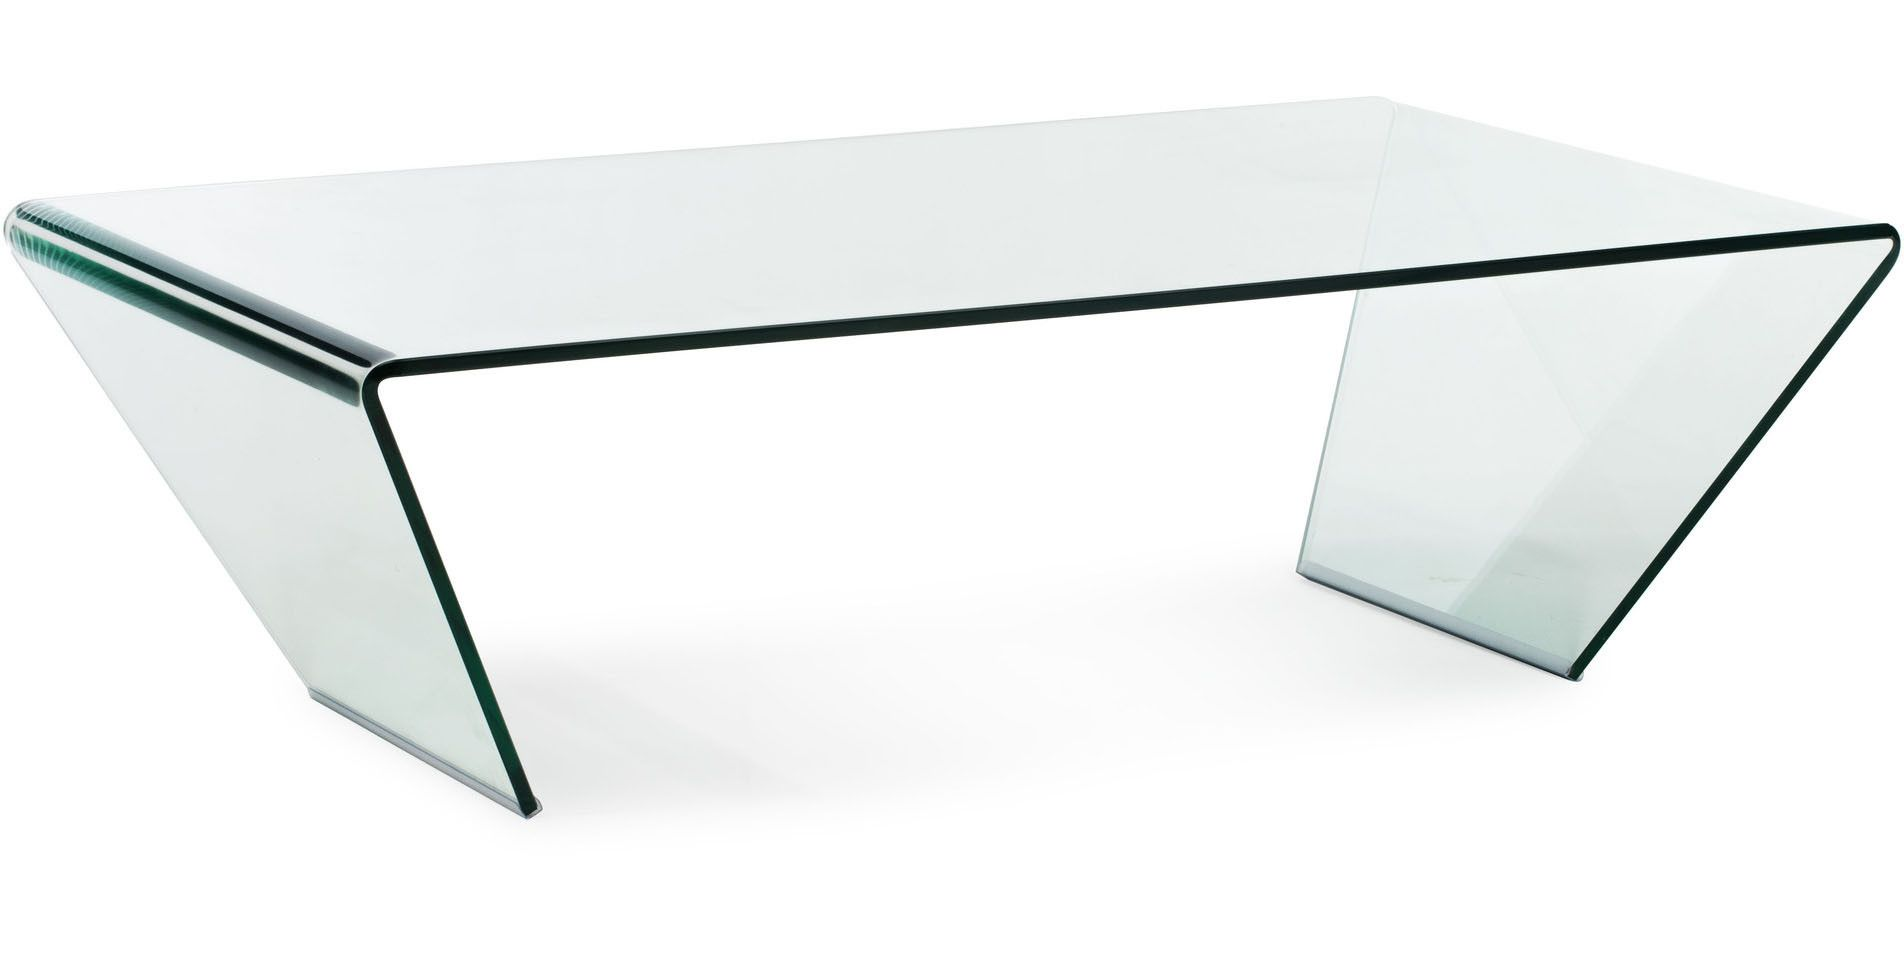 Middlebury Coffee Table Clear Glass Coffee Table Table Clear Glass [ 953 x 1904 Pixel ]